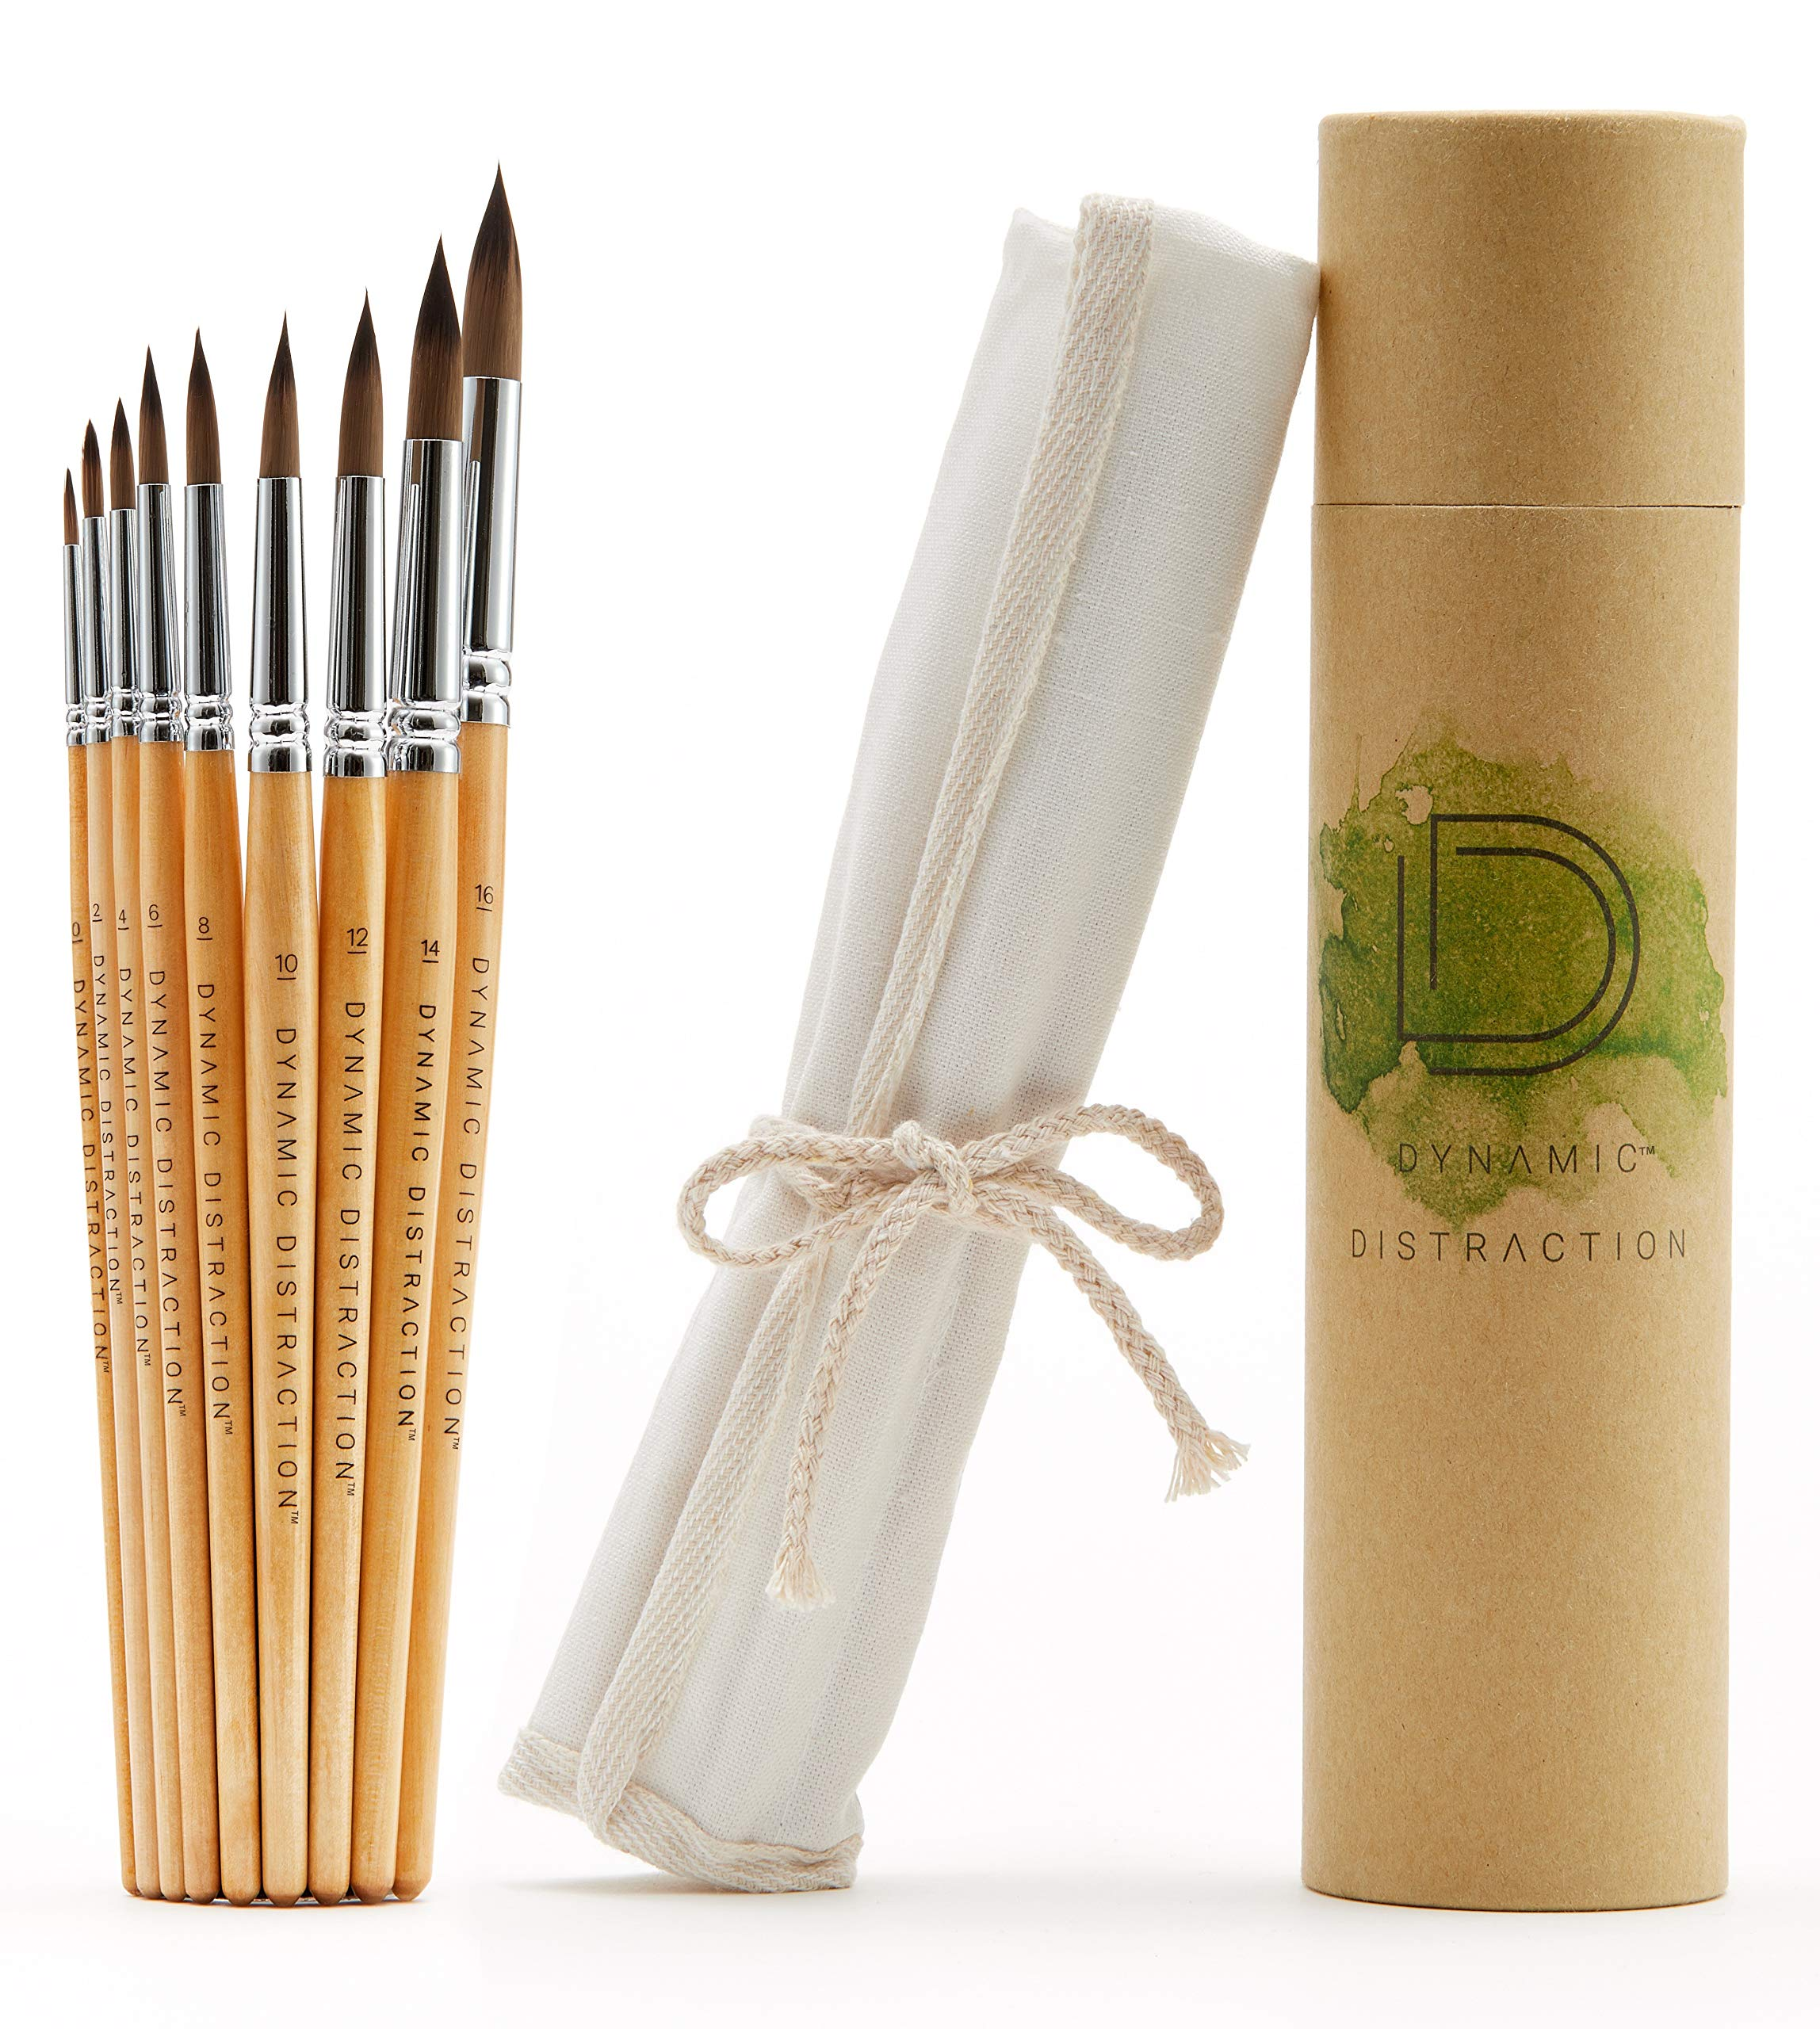 Dynamic Distraction Watercolor Brushes for Painting - Round Water Color Paint Brush Set of 9 - Comfortable Handle Size - Professional Artist Quality - Perfect for Watercolor, Acrylic and Gouache by Dynamic Distraction